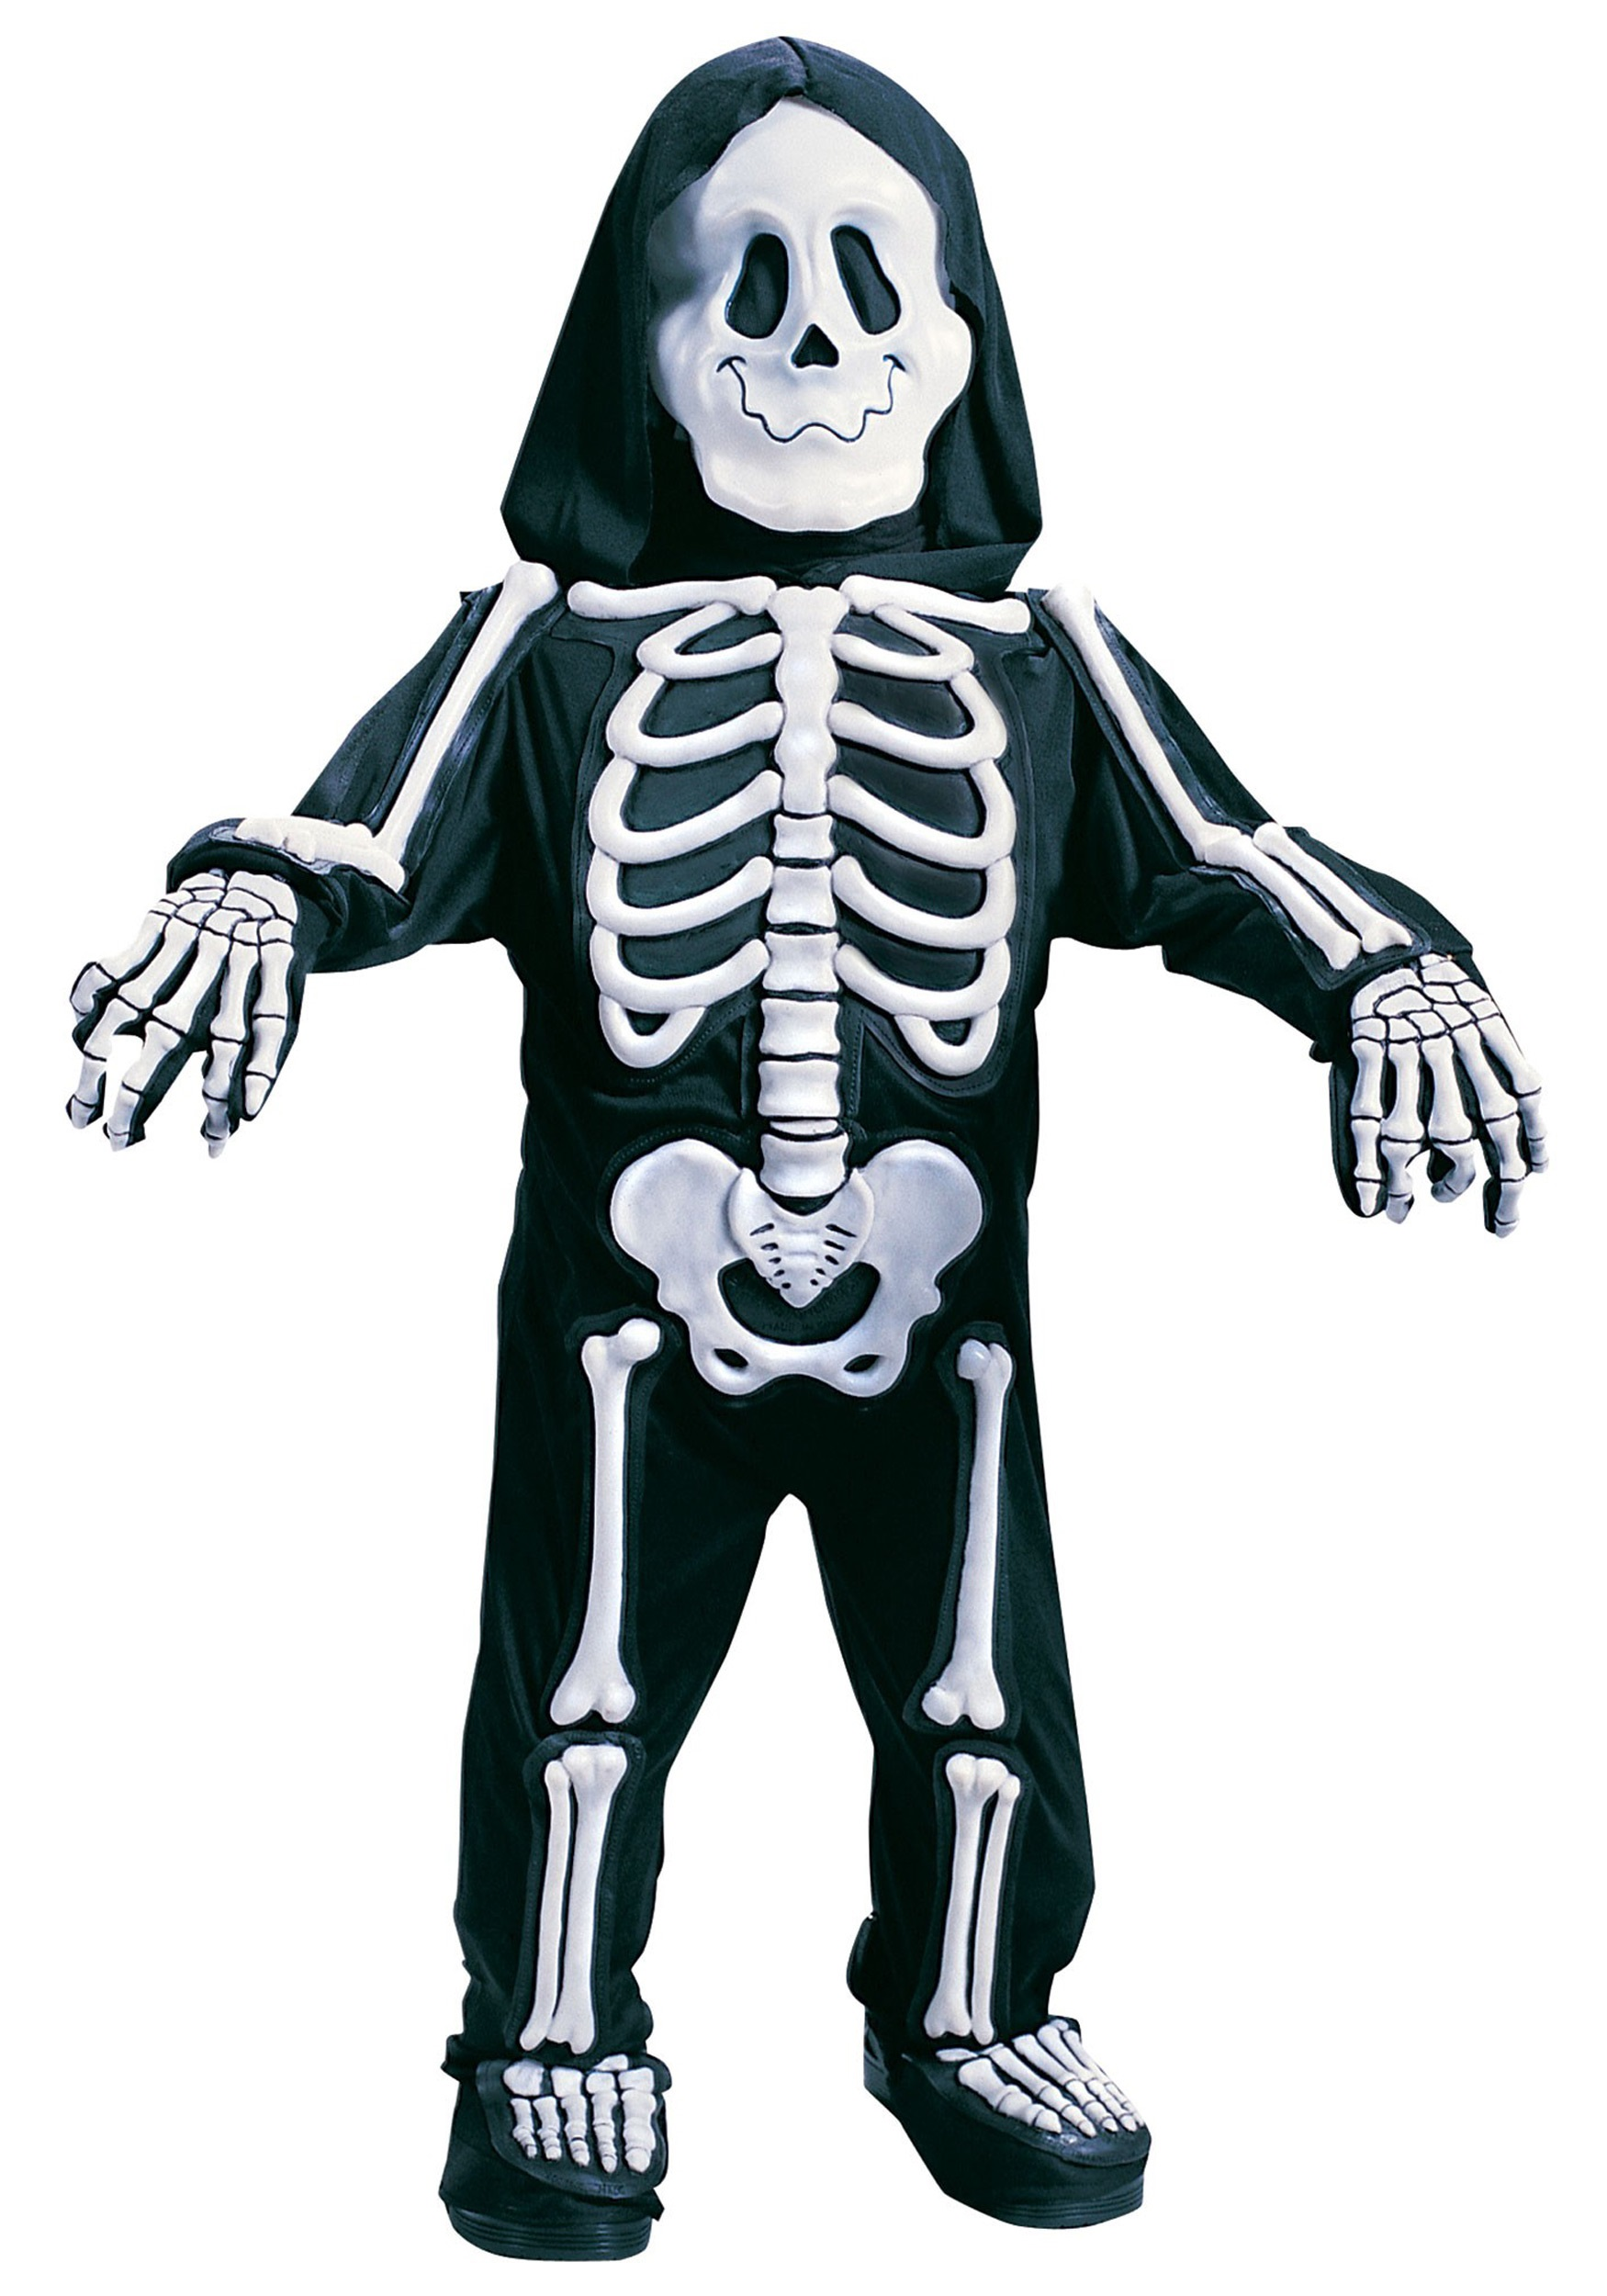 Child White Skeleton Costume  sc 1 st  Halloween Costumes & Child White Skeleton Costume - Halloween Costumes